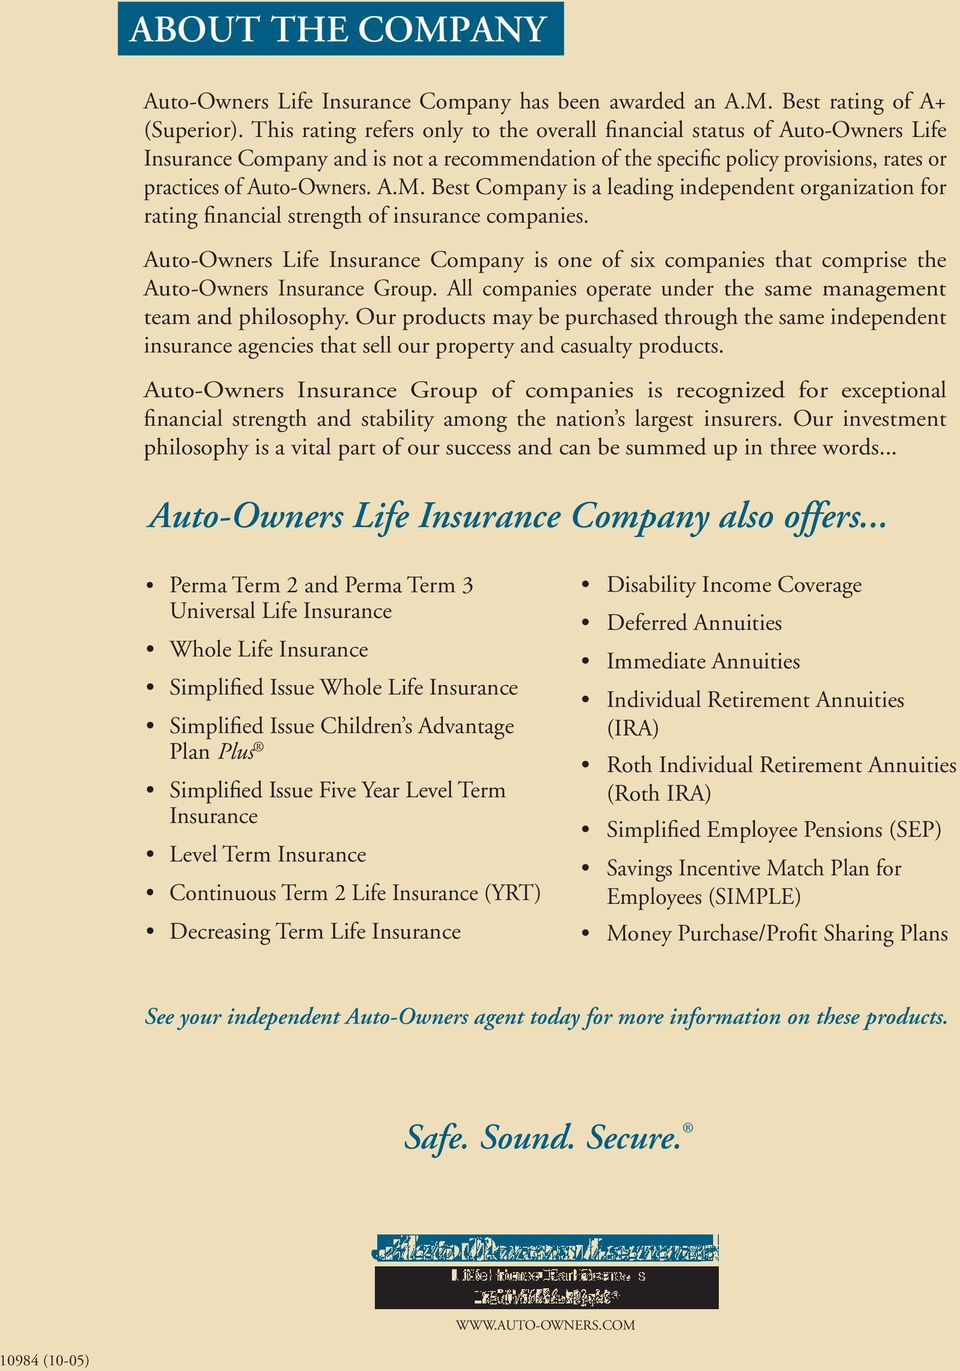 Best Company is a leading independent organization for rating financial strength of insurance companies.